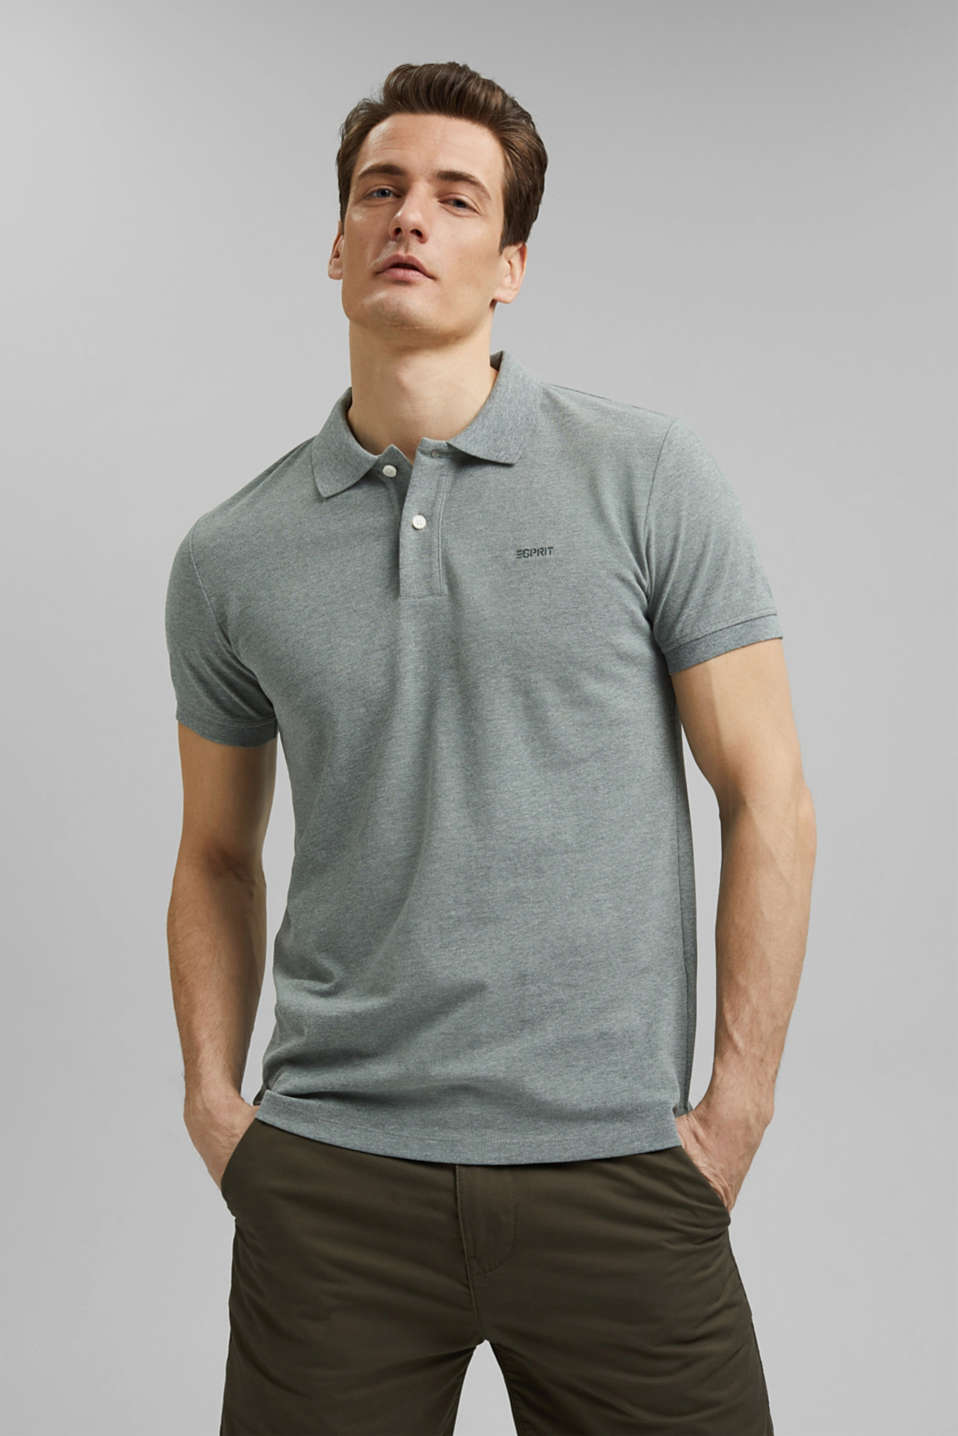 Esprit - Recycled: Piqué polo shirt with organic cotton